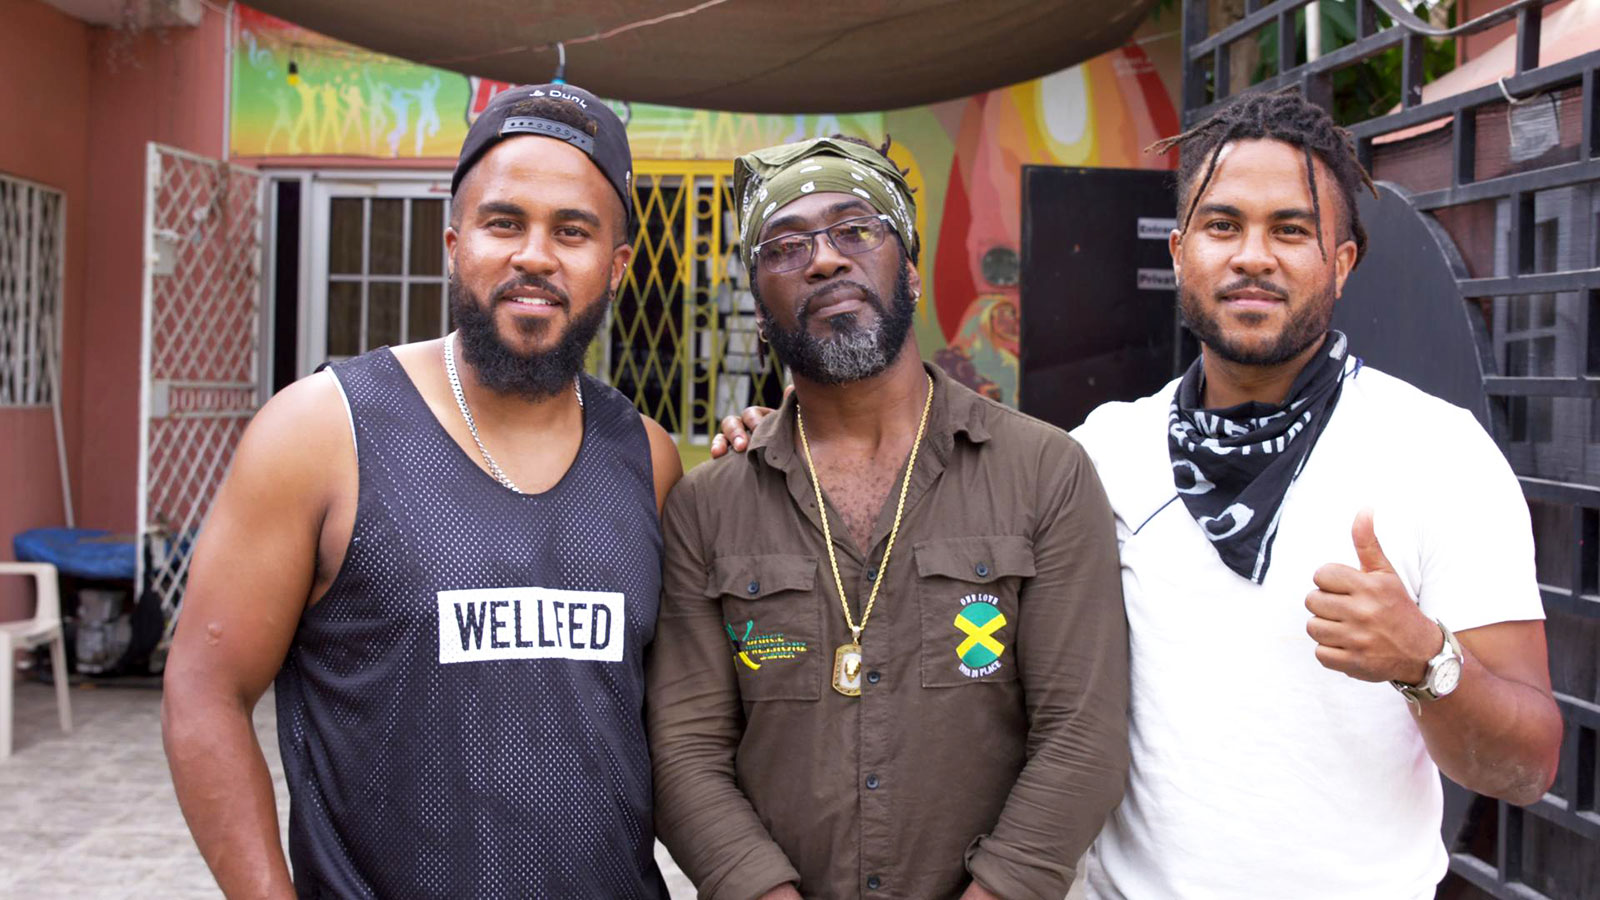 The Brodie brothers with Orville (center), dancehall professor